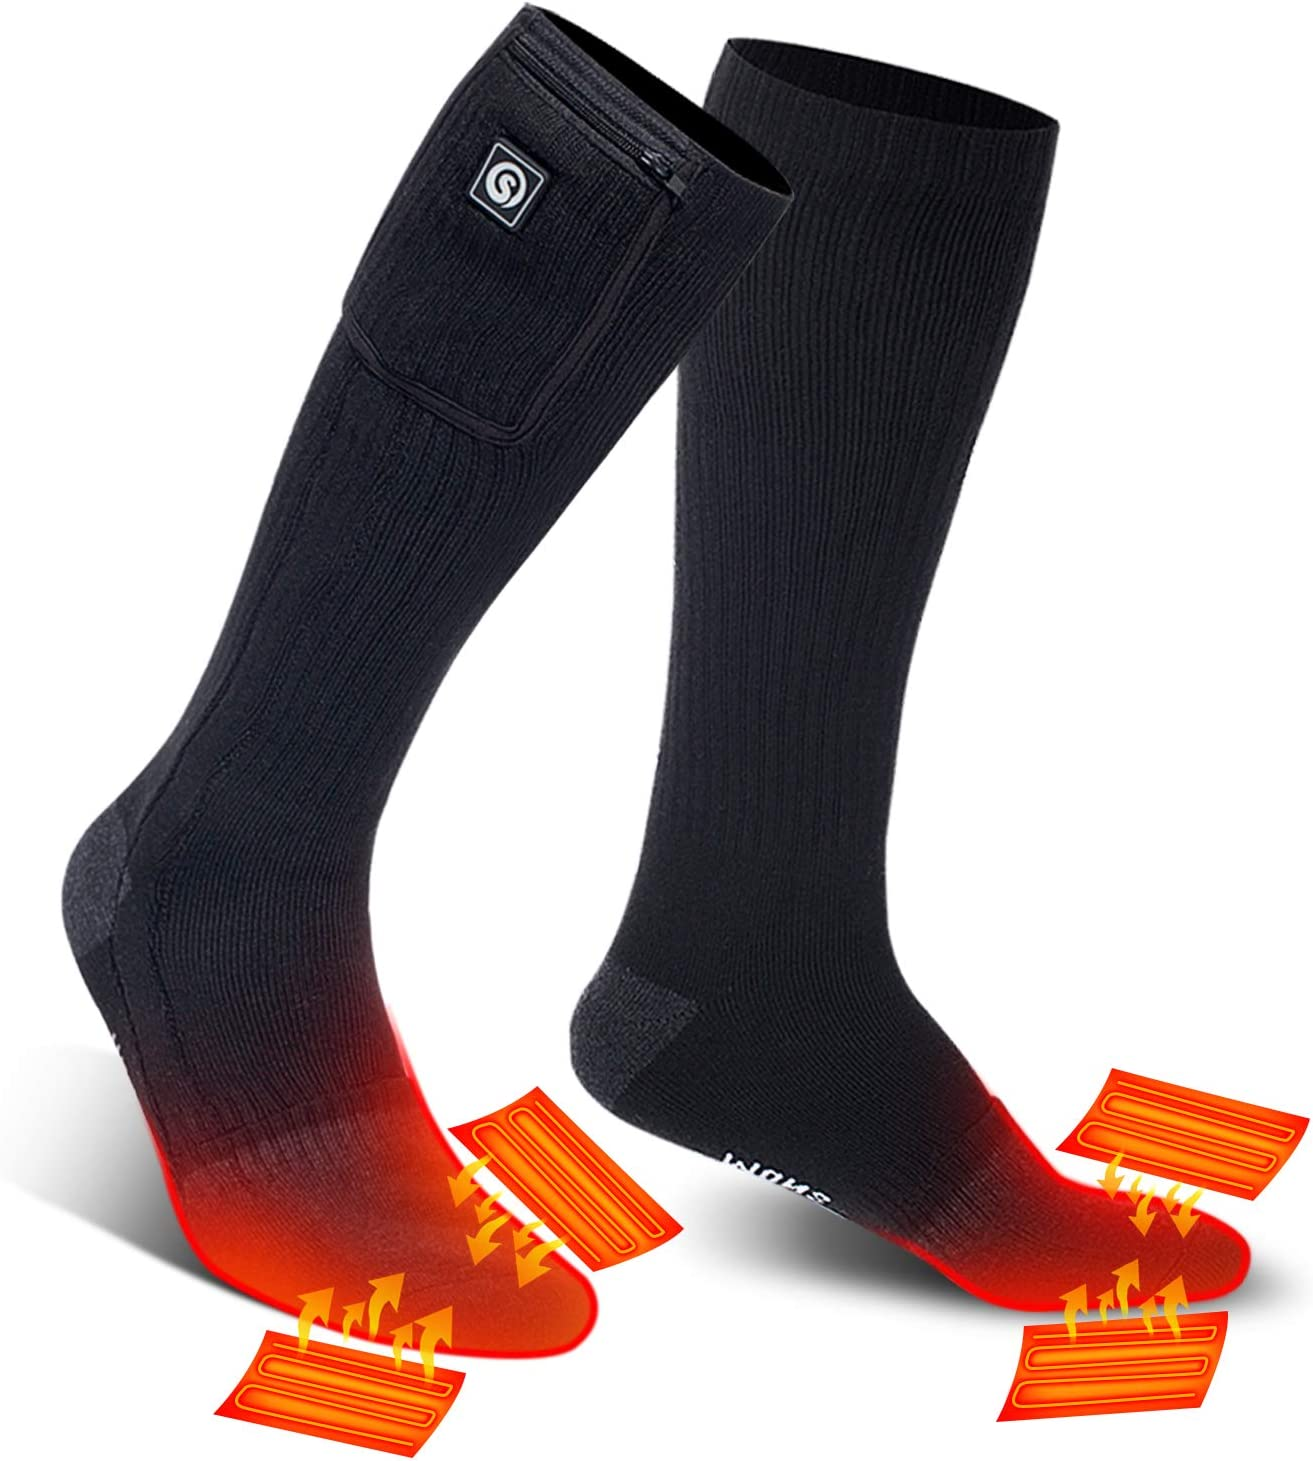 SNOW Max 82% OFF DEER Heated Socks 2021 E Upgraded 67% OFF of fixed price Battery Rechargeable 7.4V